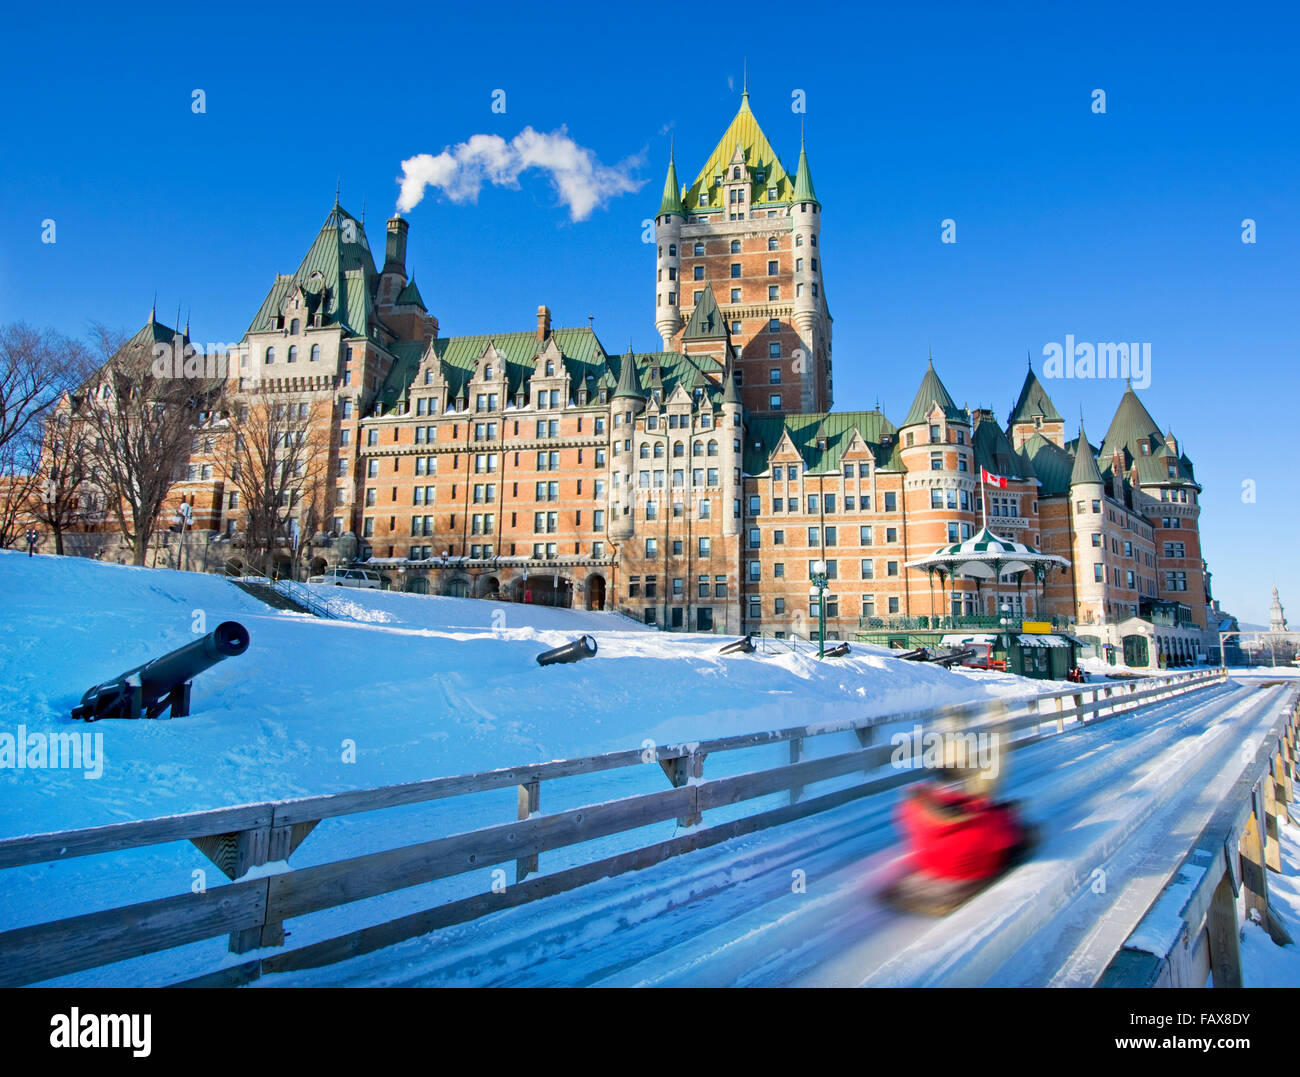 Quebec City in winter, traditional slide descent - Stock Image